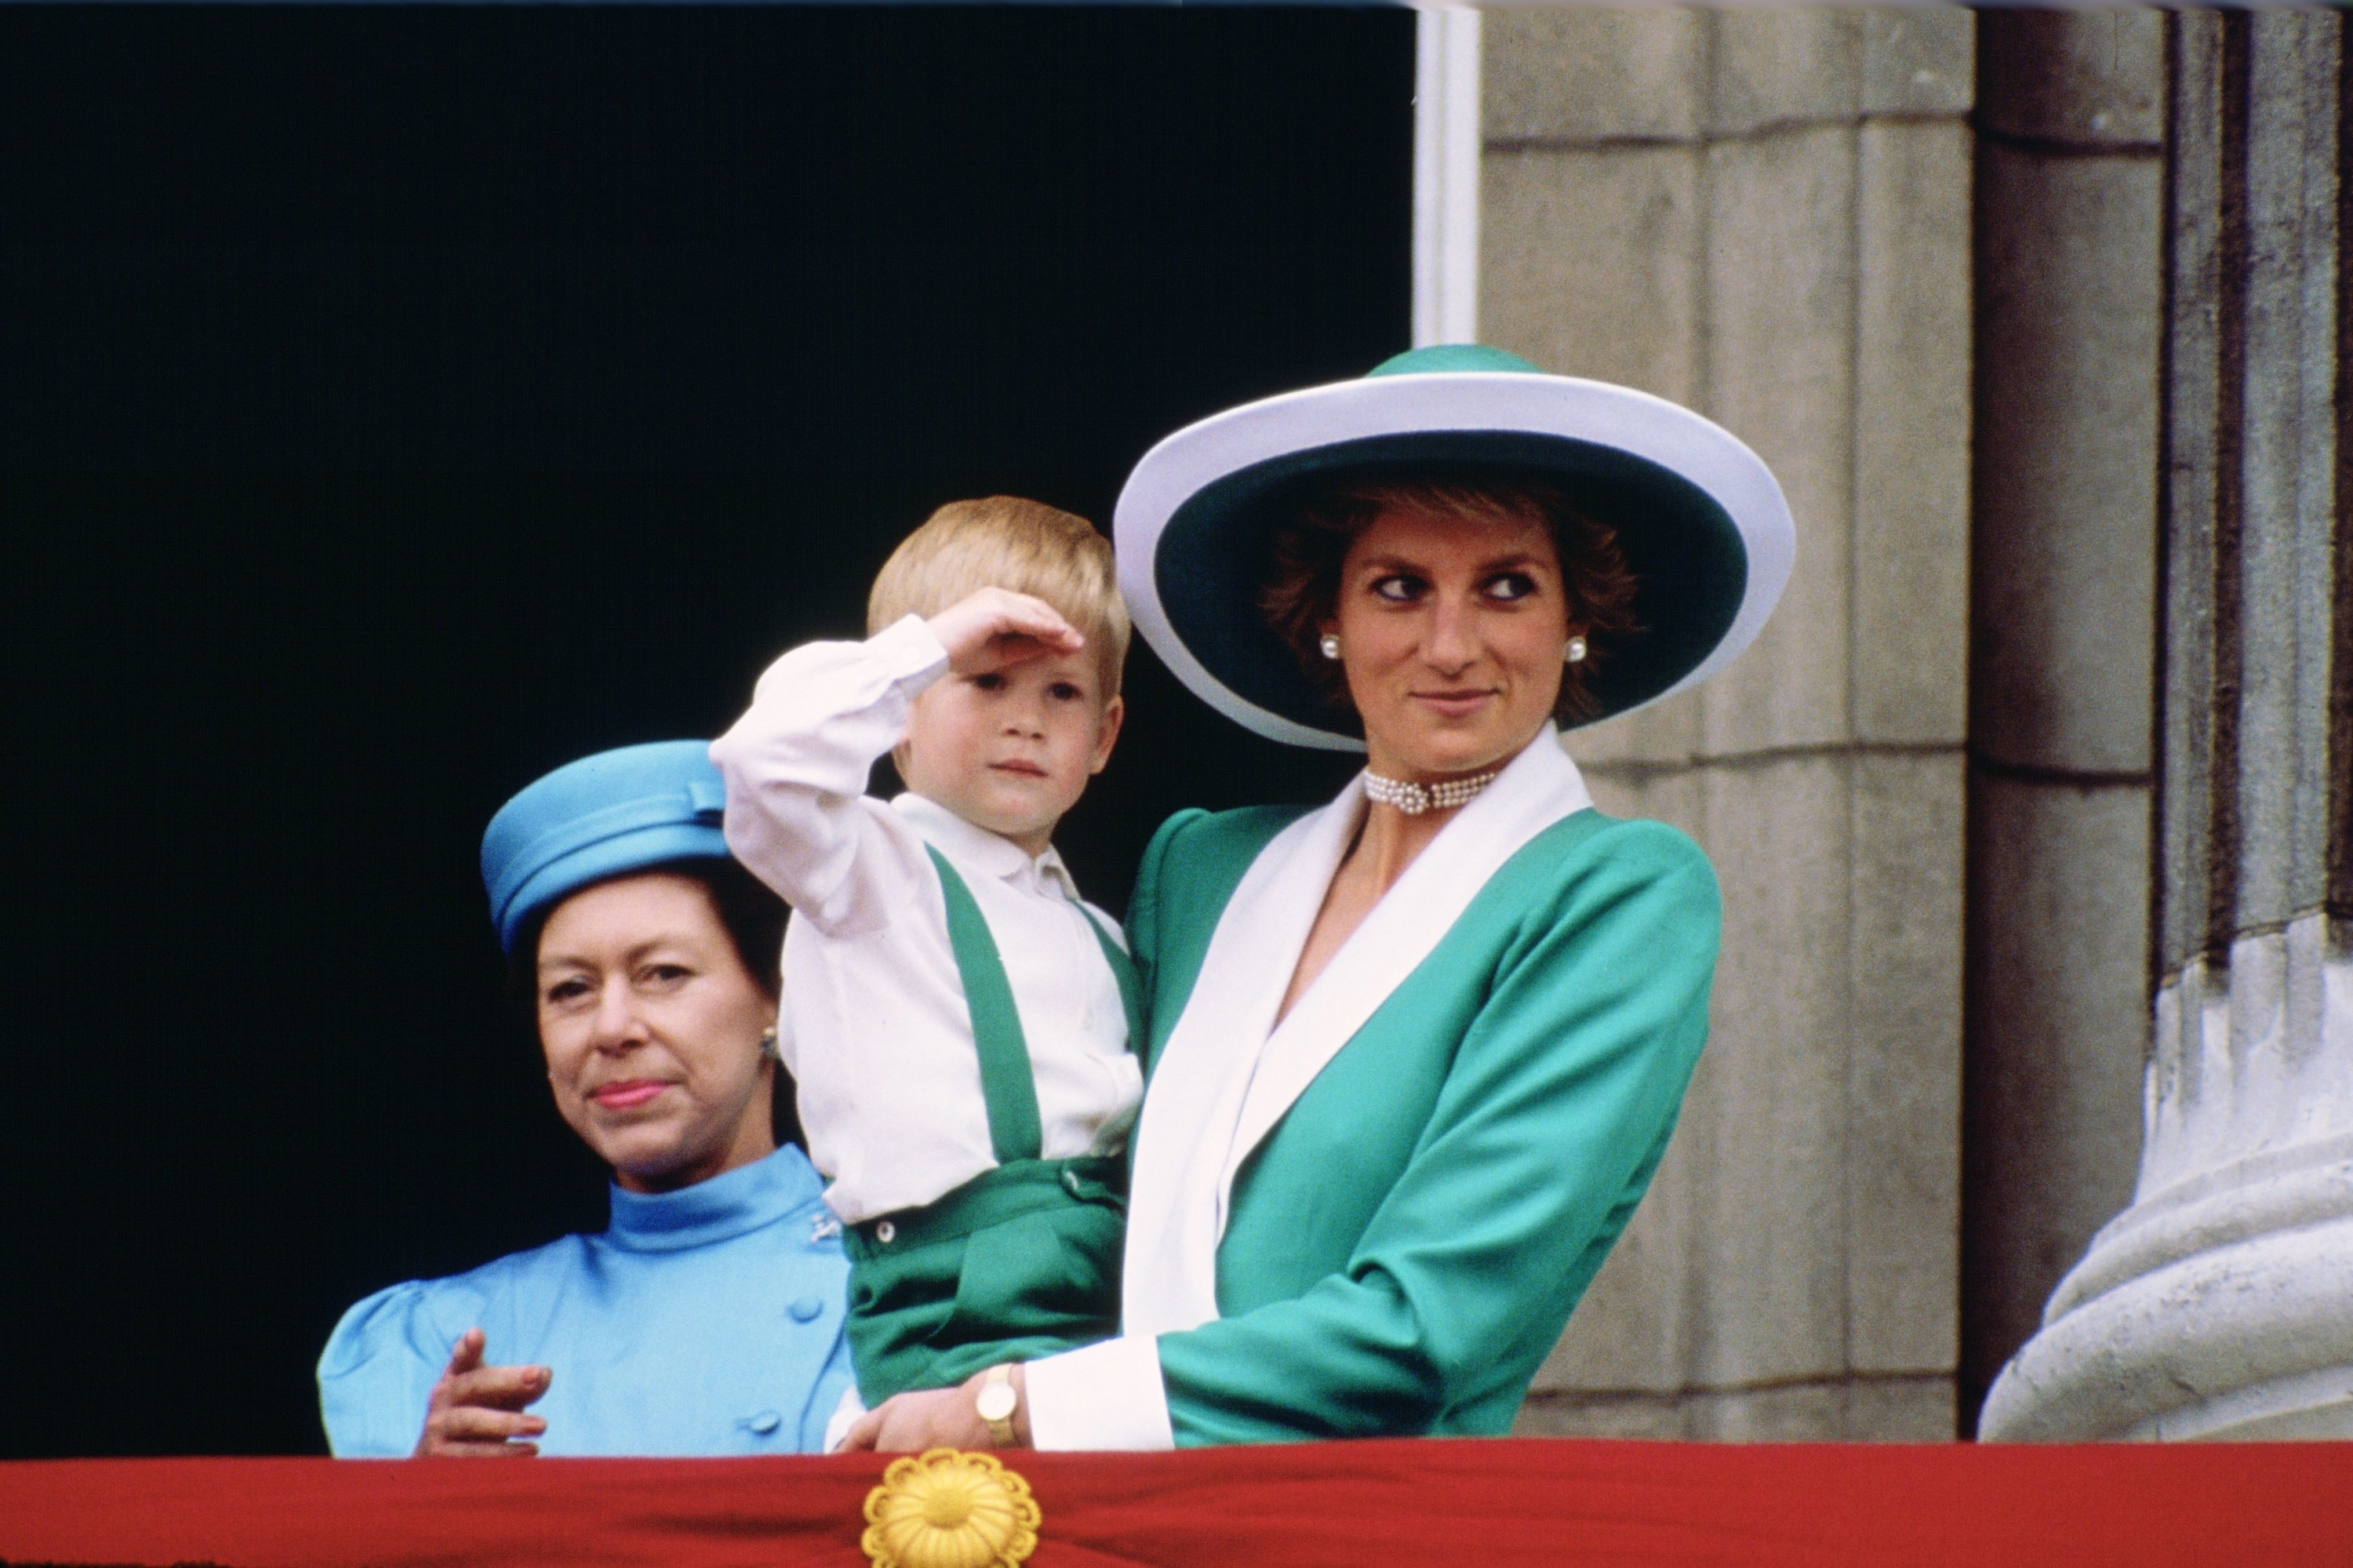 A very young Harry being held by Princess Diana